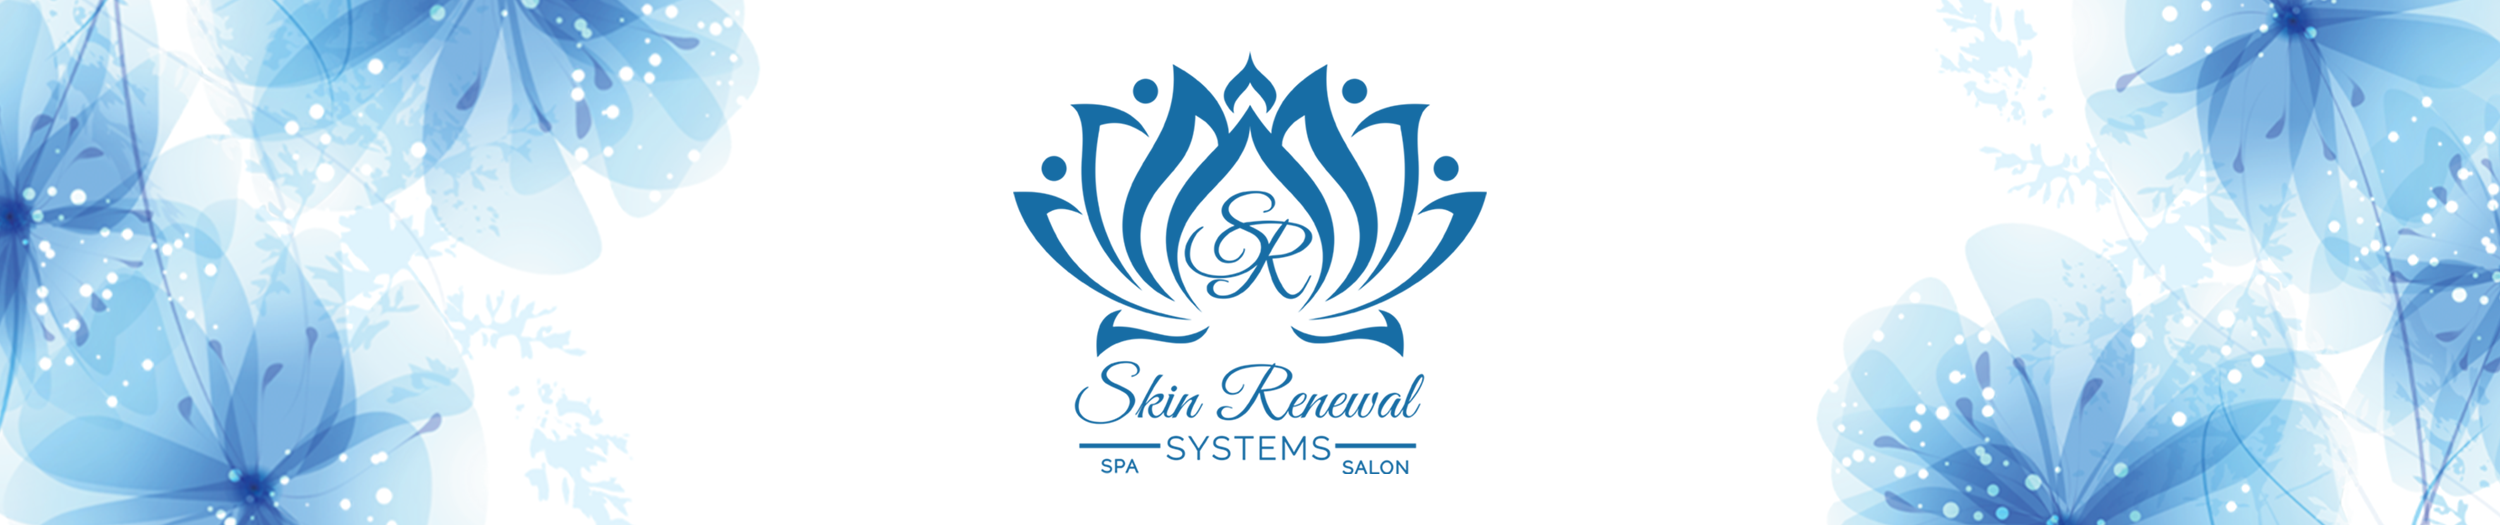 Skin Renwal Systems Logo header with flowers